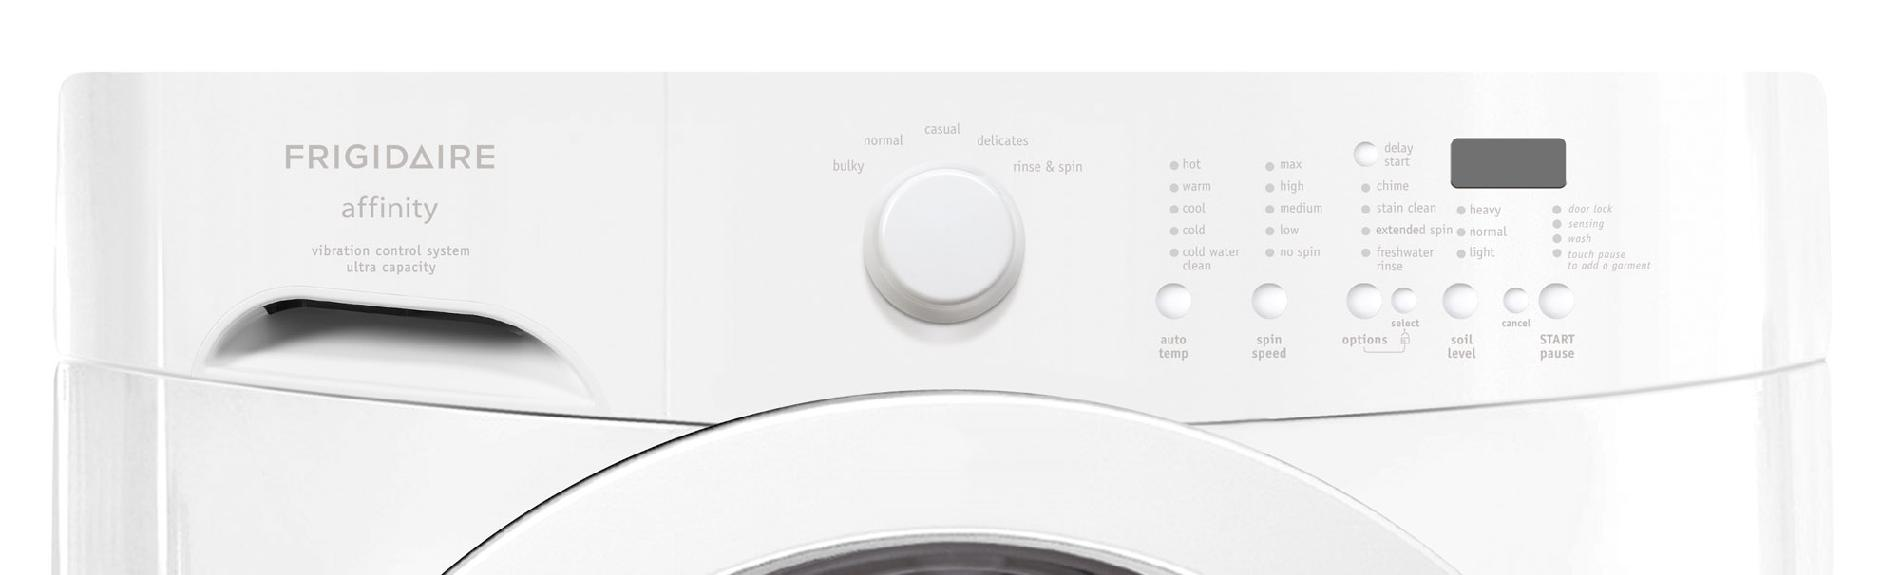 Frigidaire Affinity 3.3 cu. ft. Front-Load Washer - White